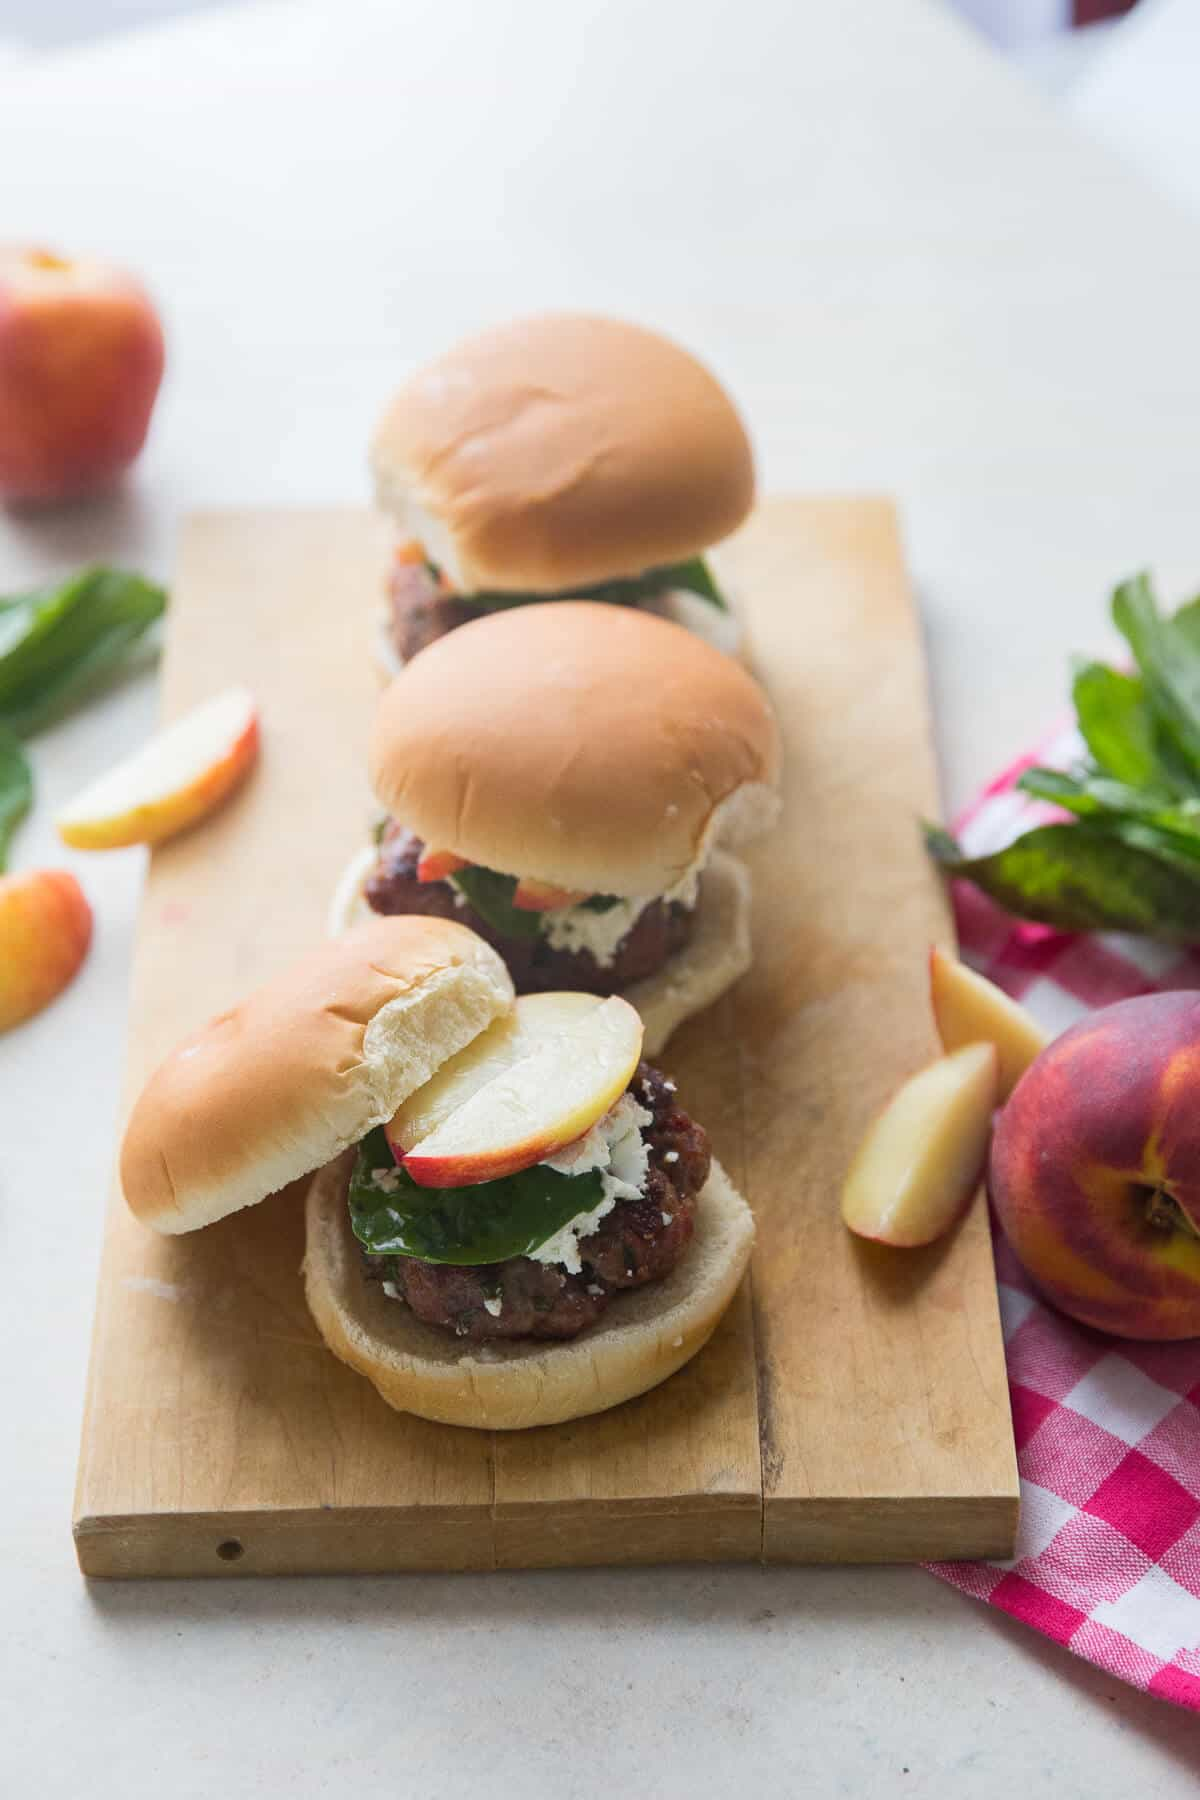 This pork burger recipe is simple yet flavorful and topped with fresh ingredients!